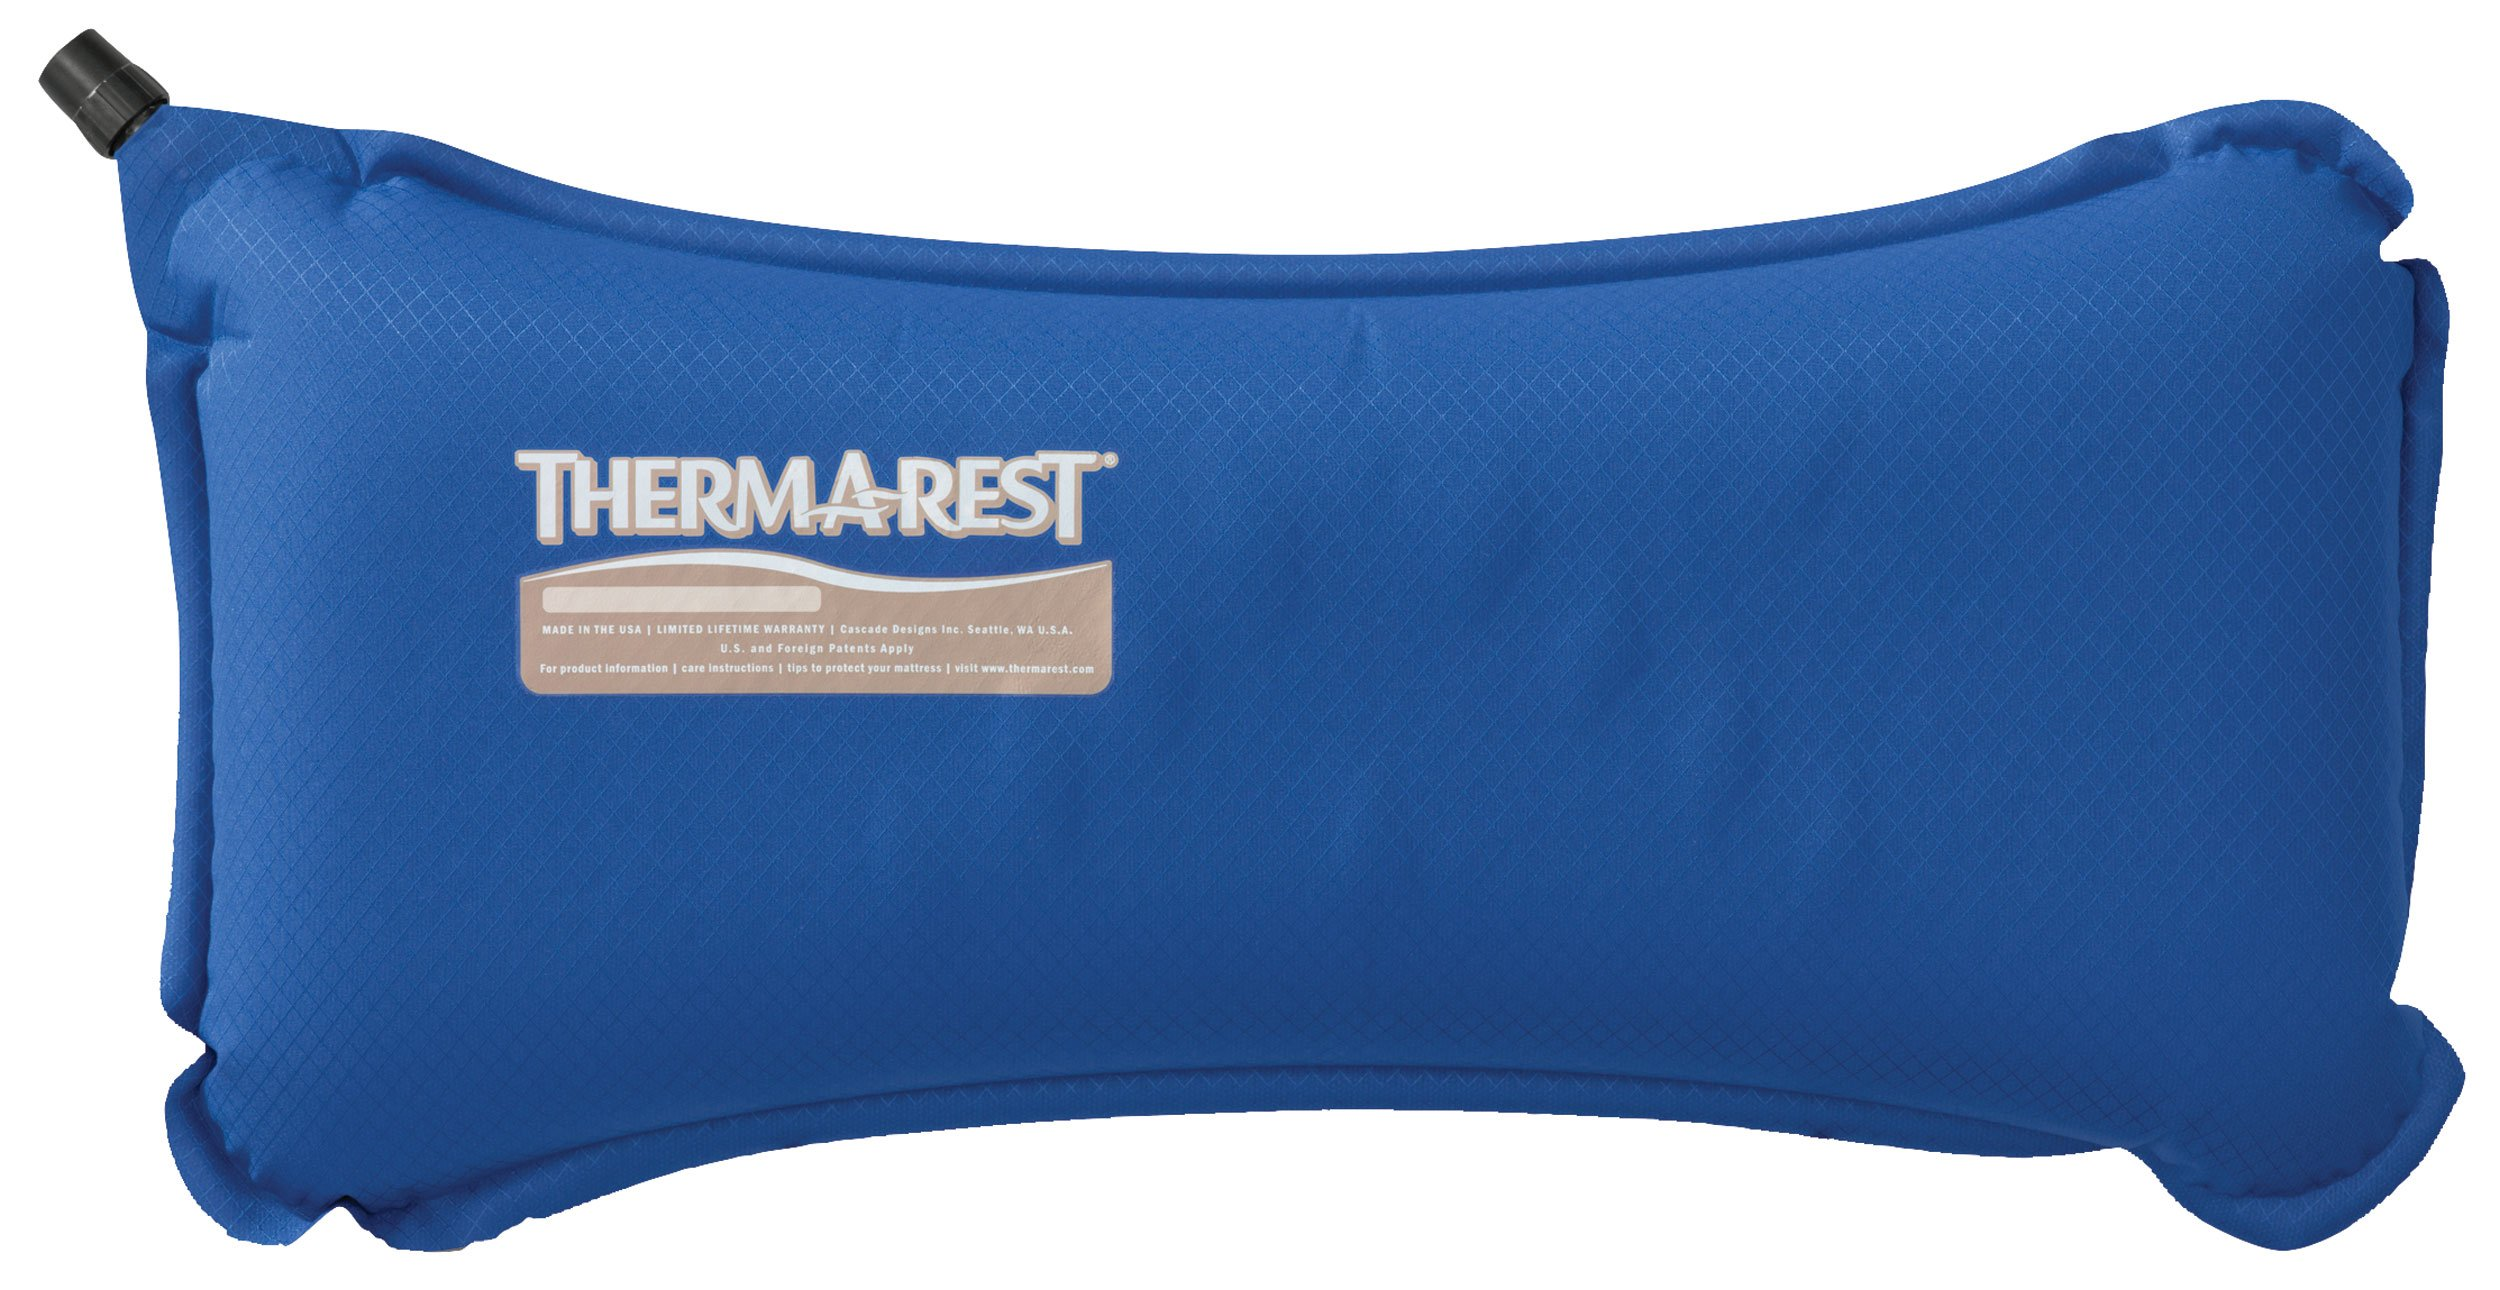 Therm-a-Rest Lumbar Travel Pillow, Nautical Blue by Therm-a-Rest